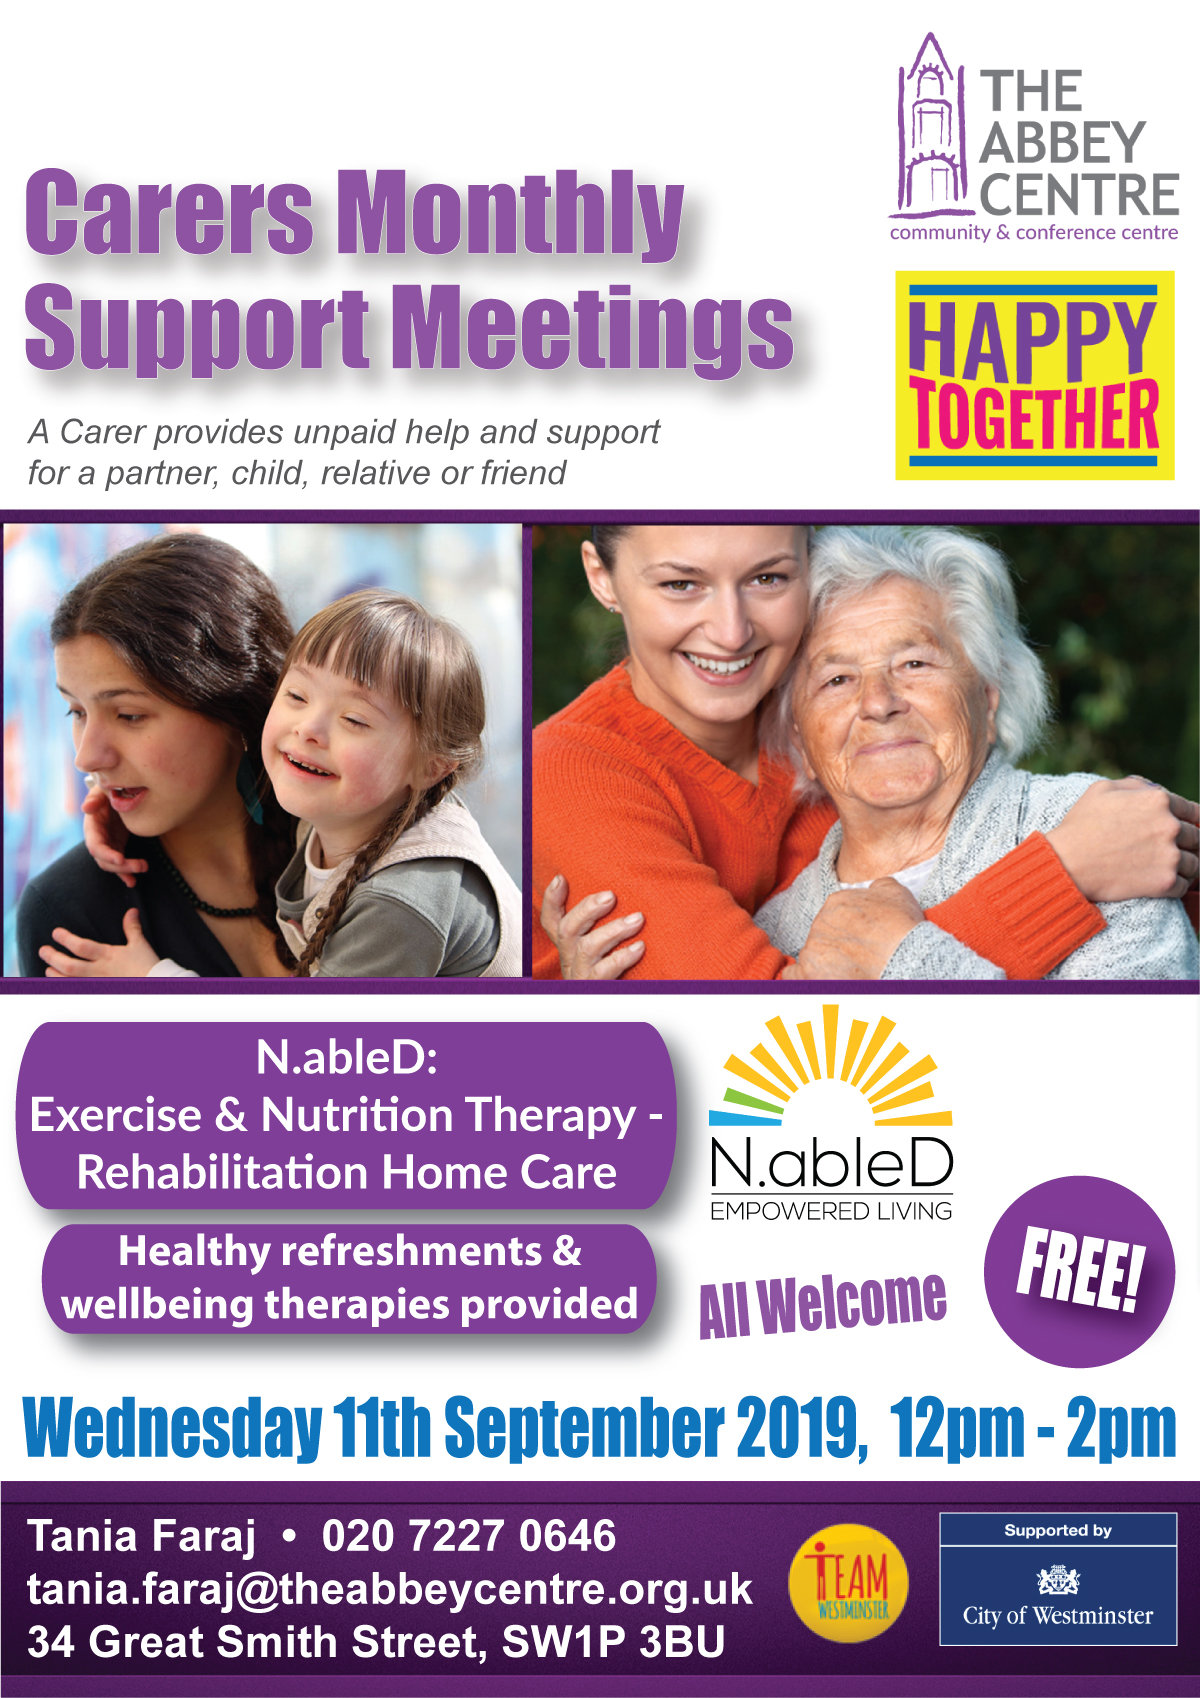 Carers Monthly Support Meeting poster